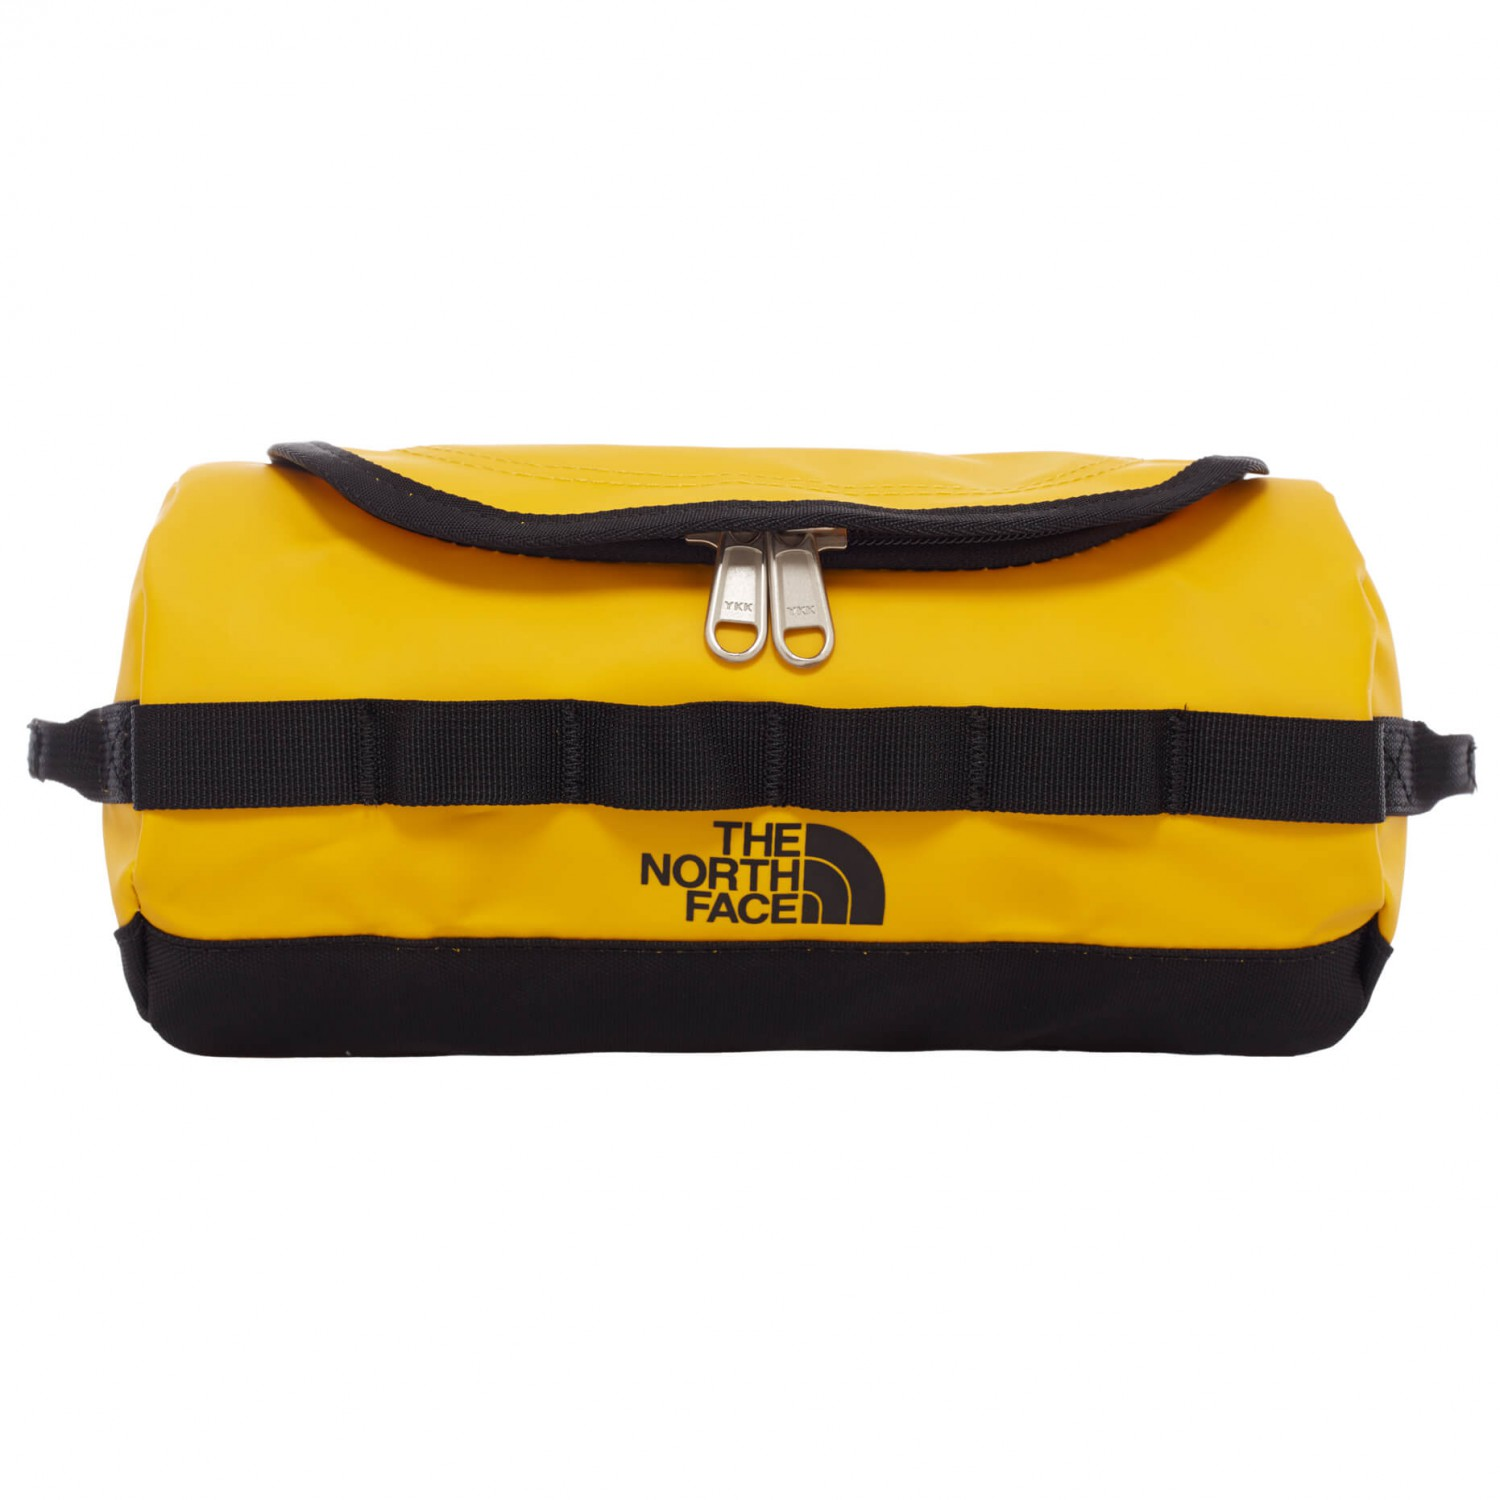 f665ec0cc The North Face Base Camp Travel Canister - Wash Bag   Buy online ...